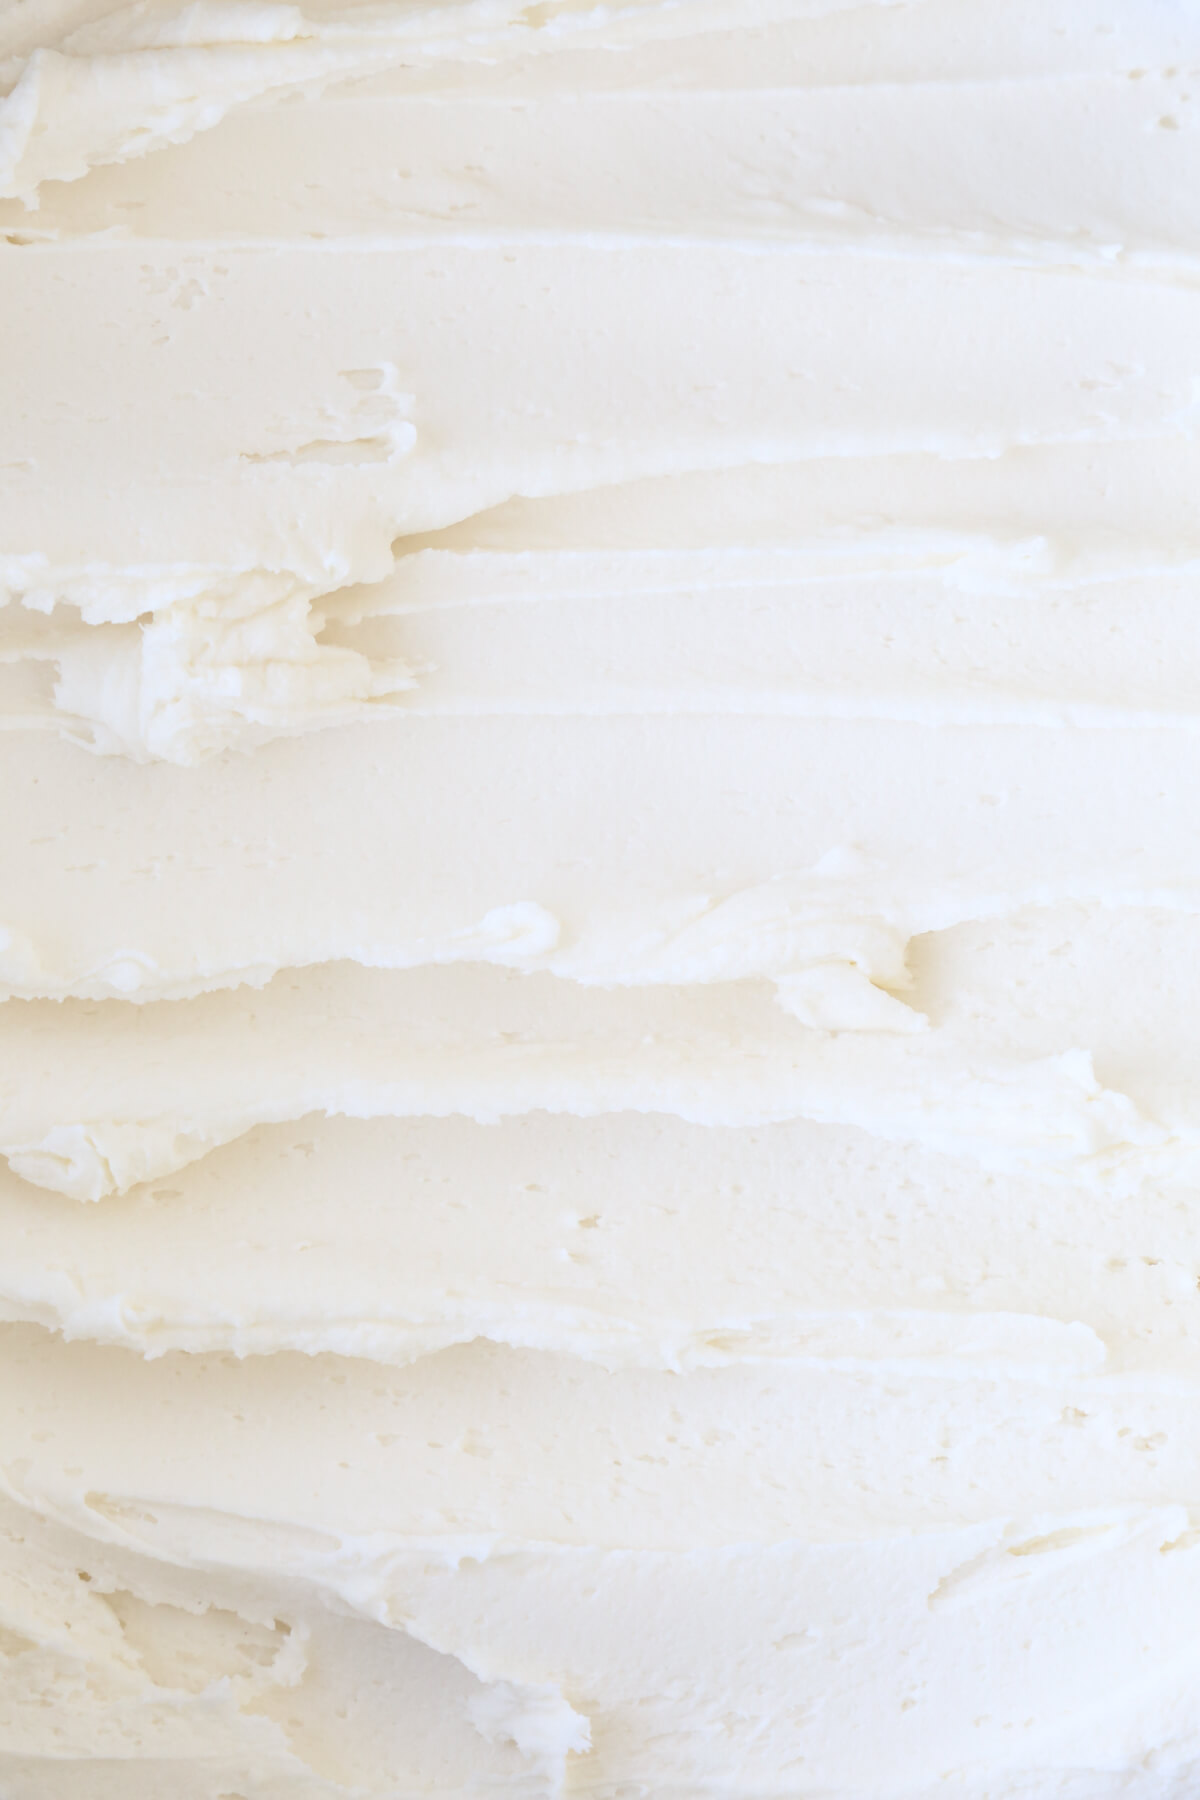 A close up of white frosting.